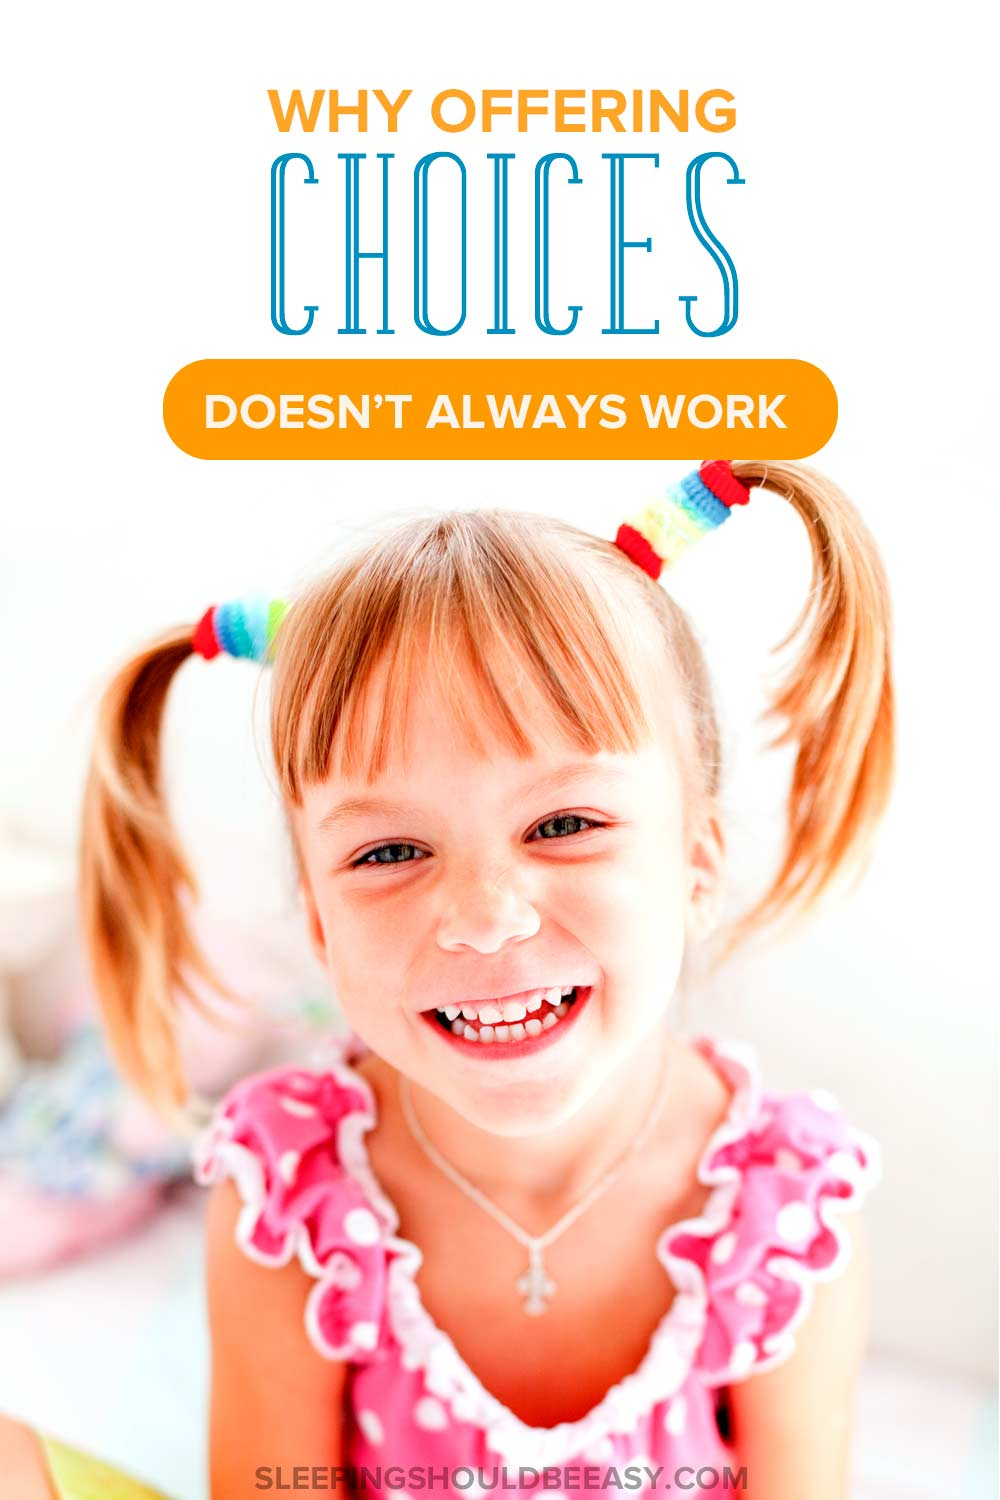 You hear all the time that giving kids choices is the way to go. But what if it backfires? Here's when and how to offer choices effectively.